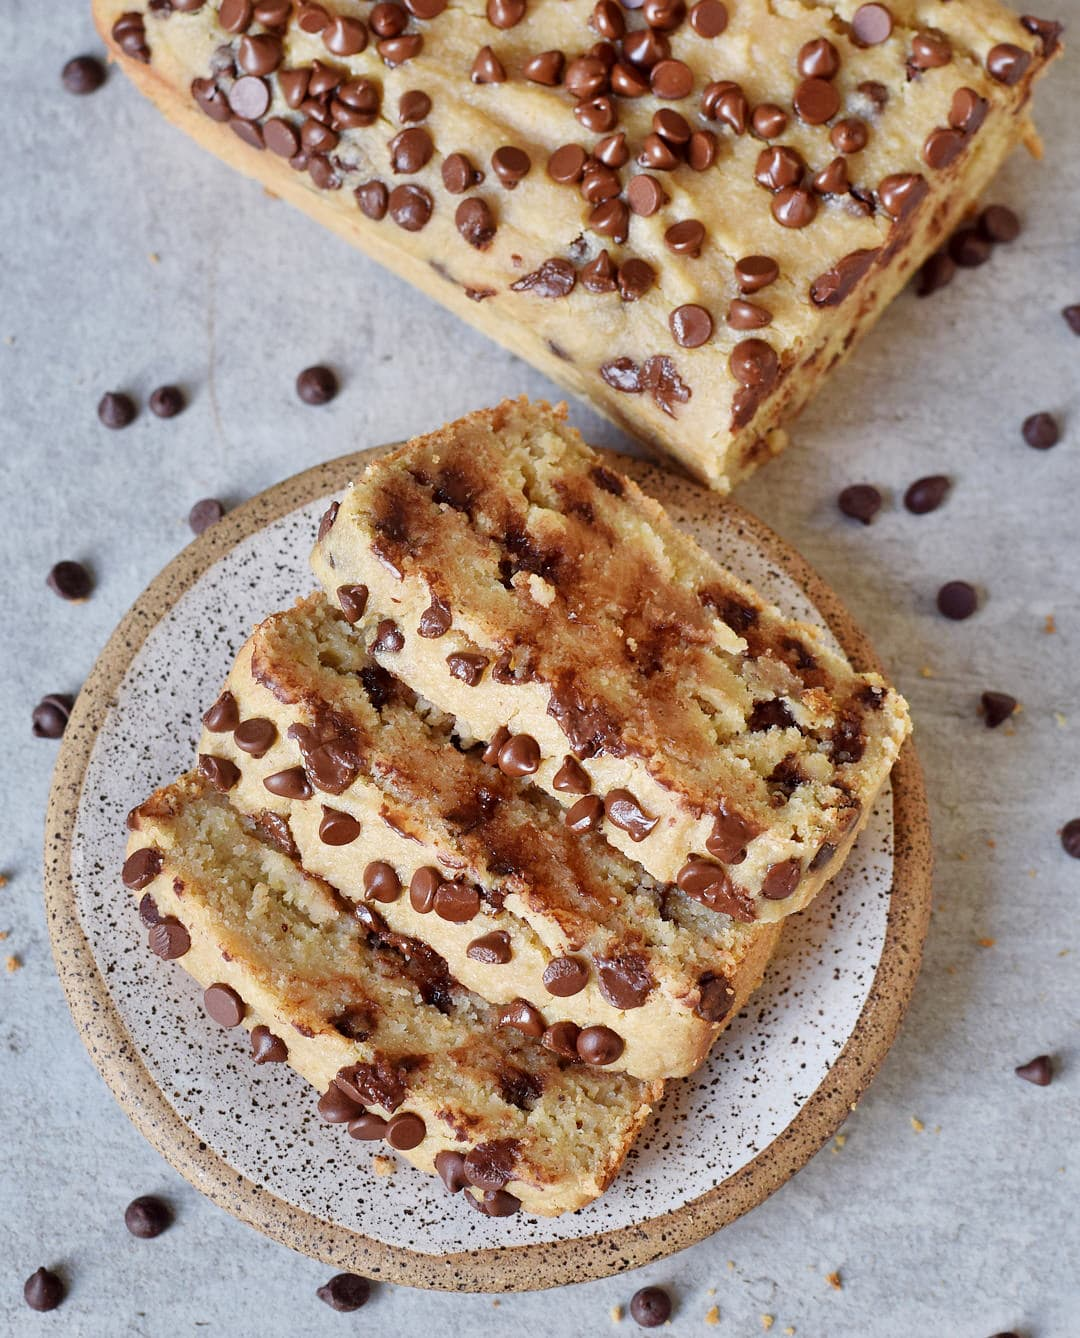 vegan chocolate chip banana bread on a plate